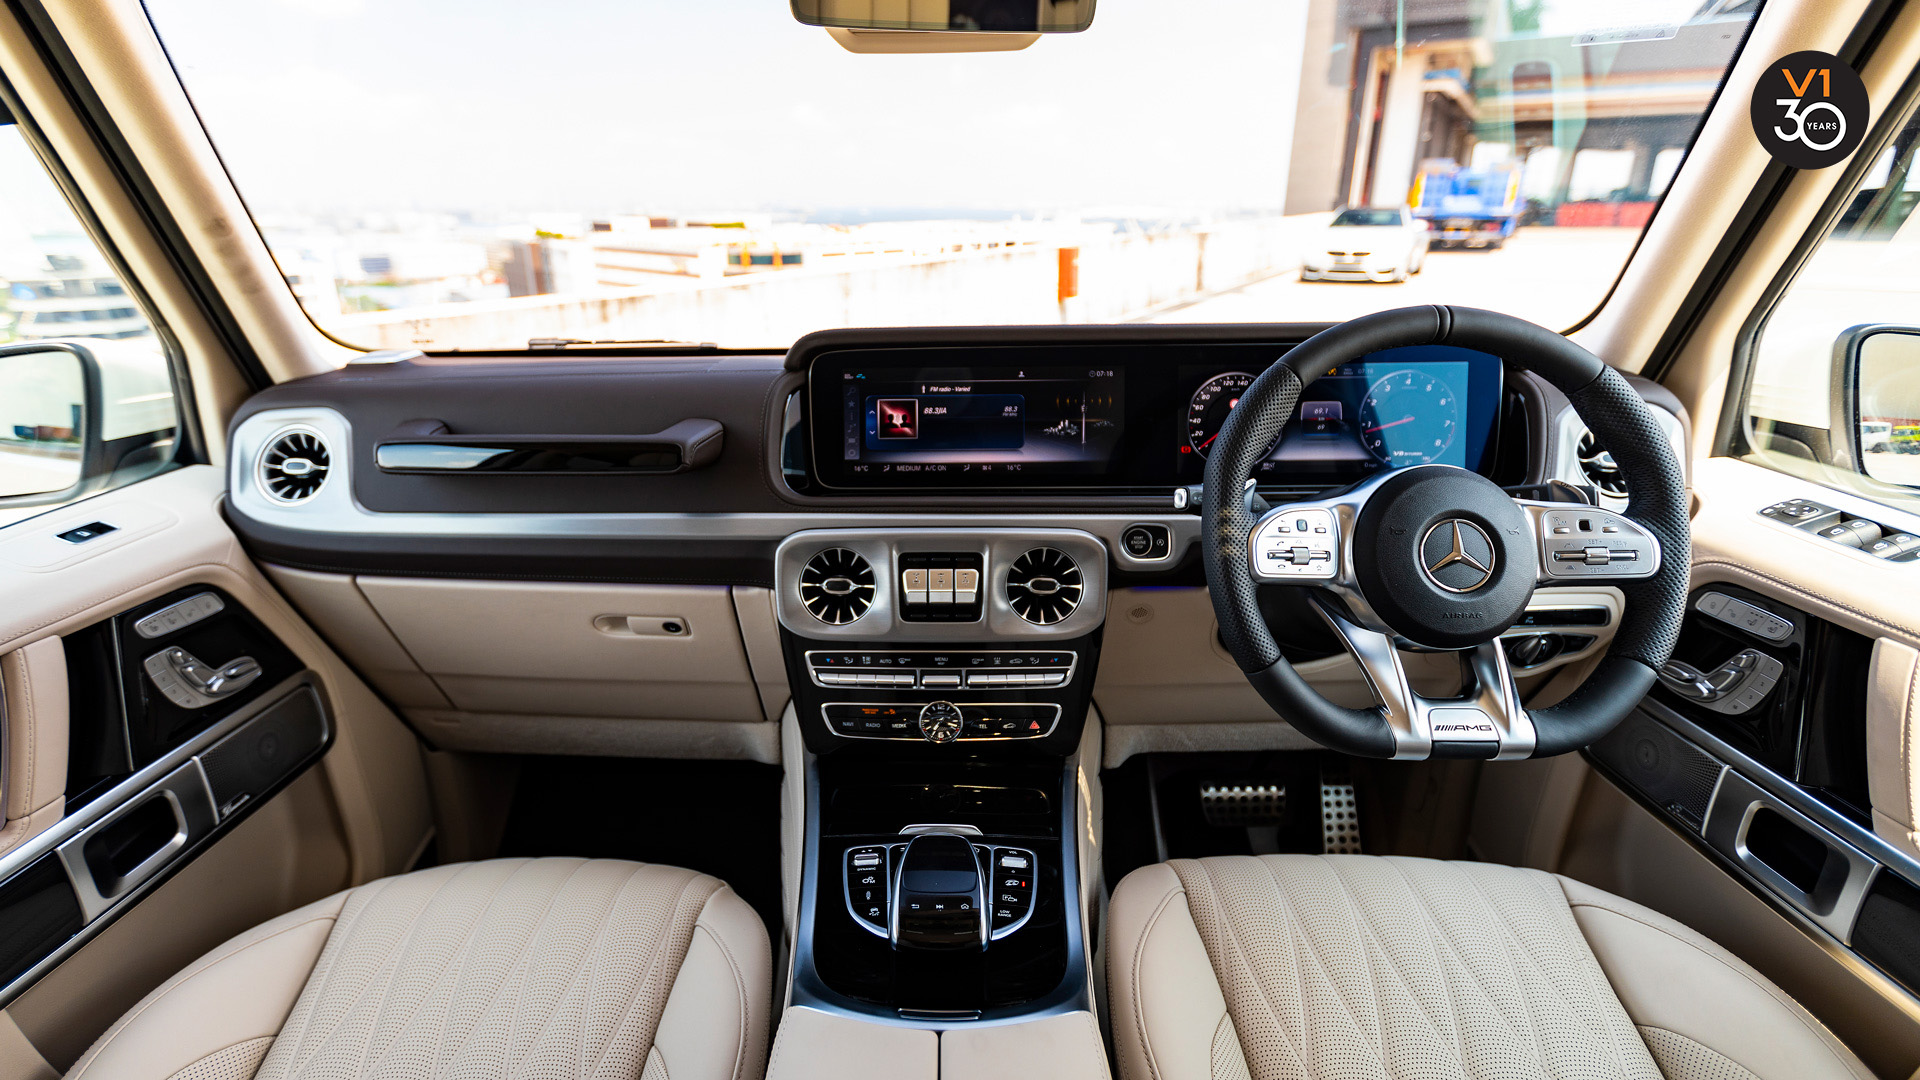 Mercedes G63 AMG - Infotainment System